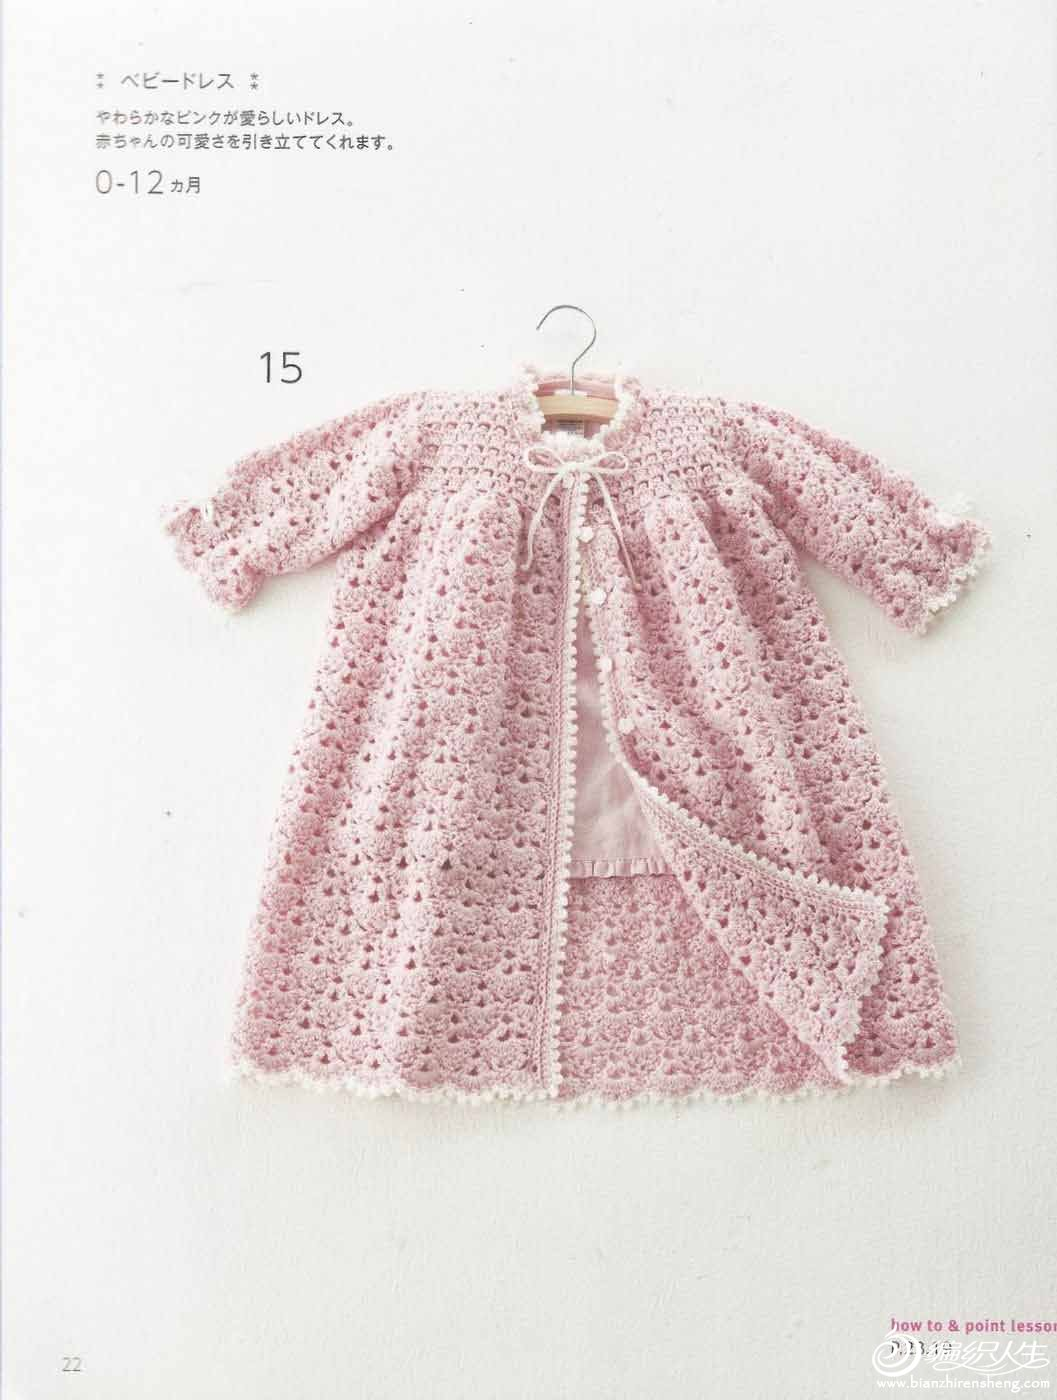 Happy crochet time for my baby_页面_24.jpg